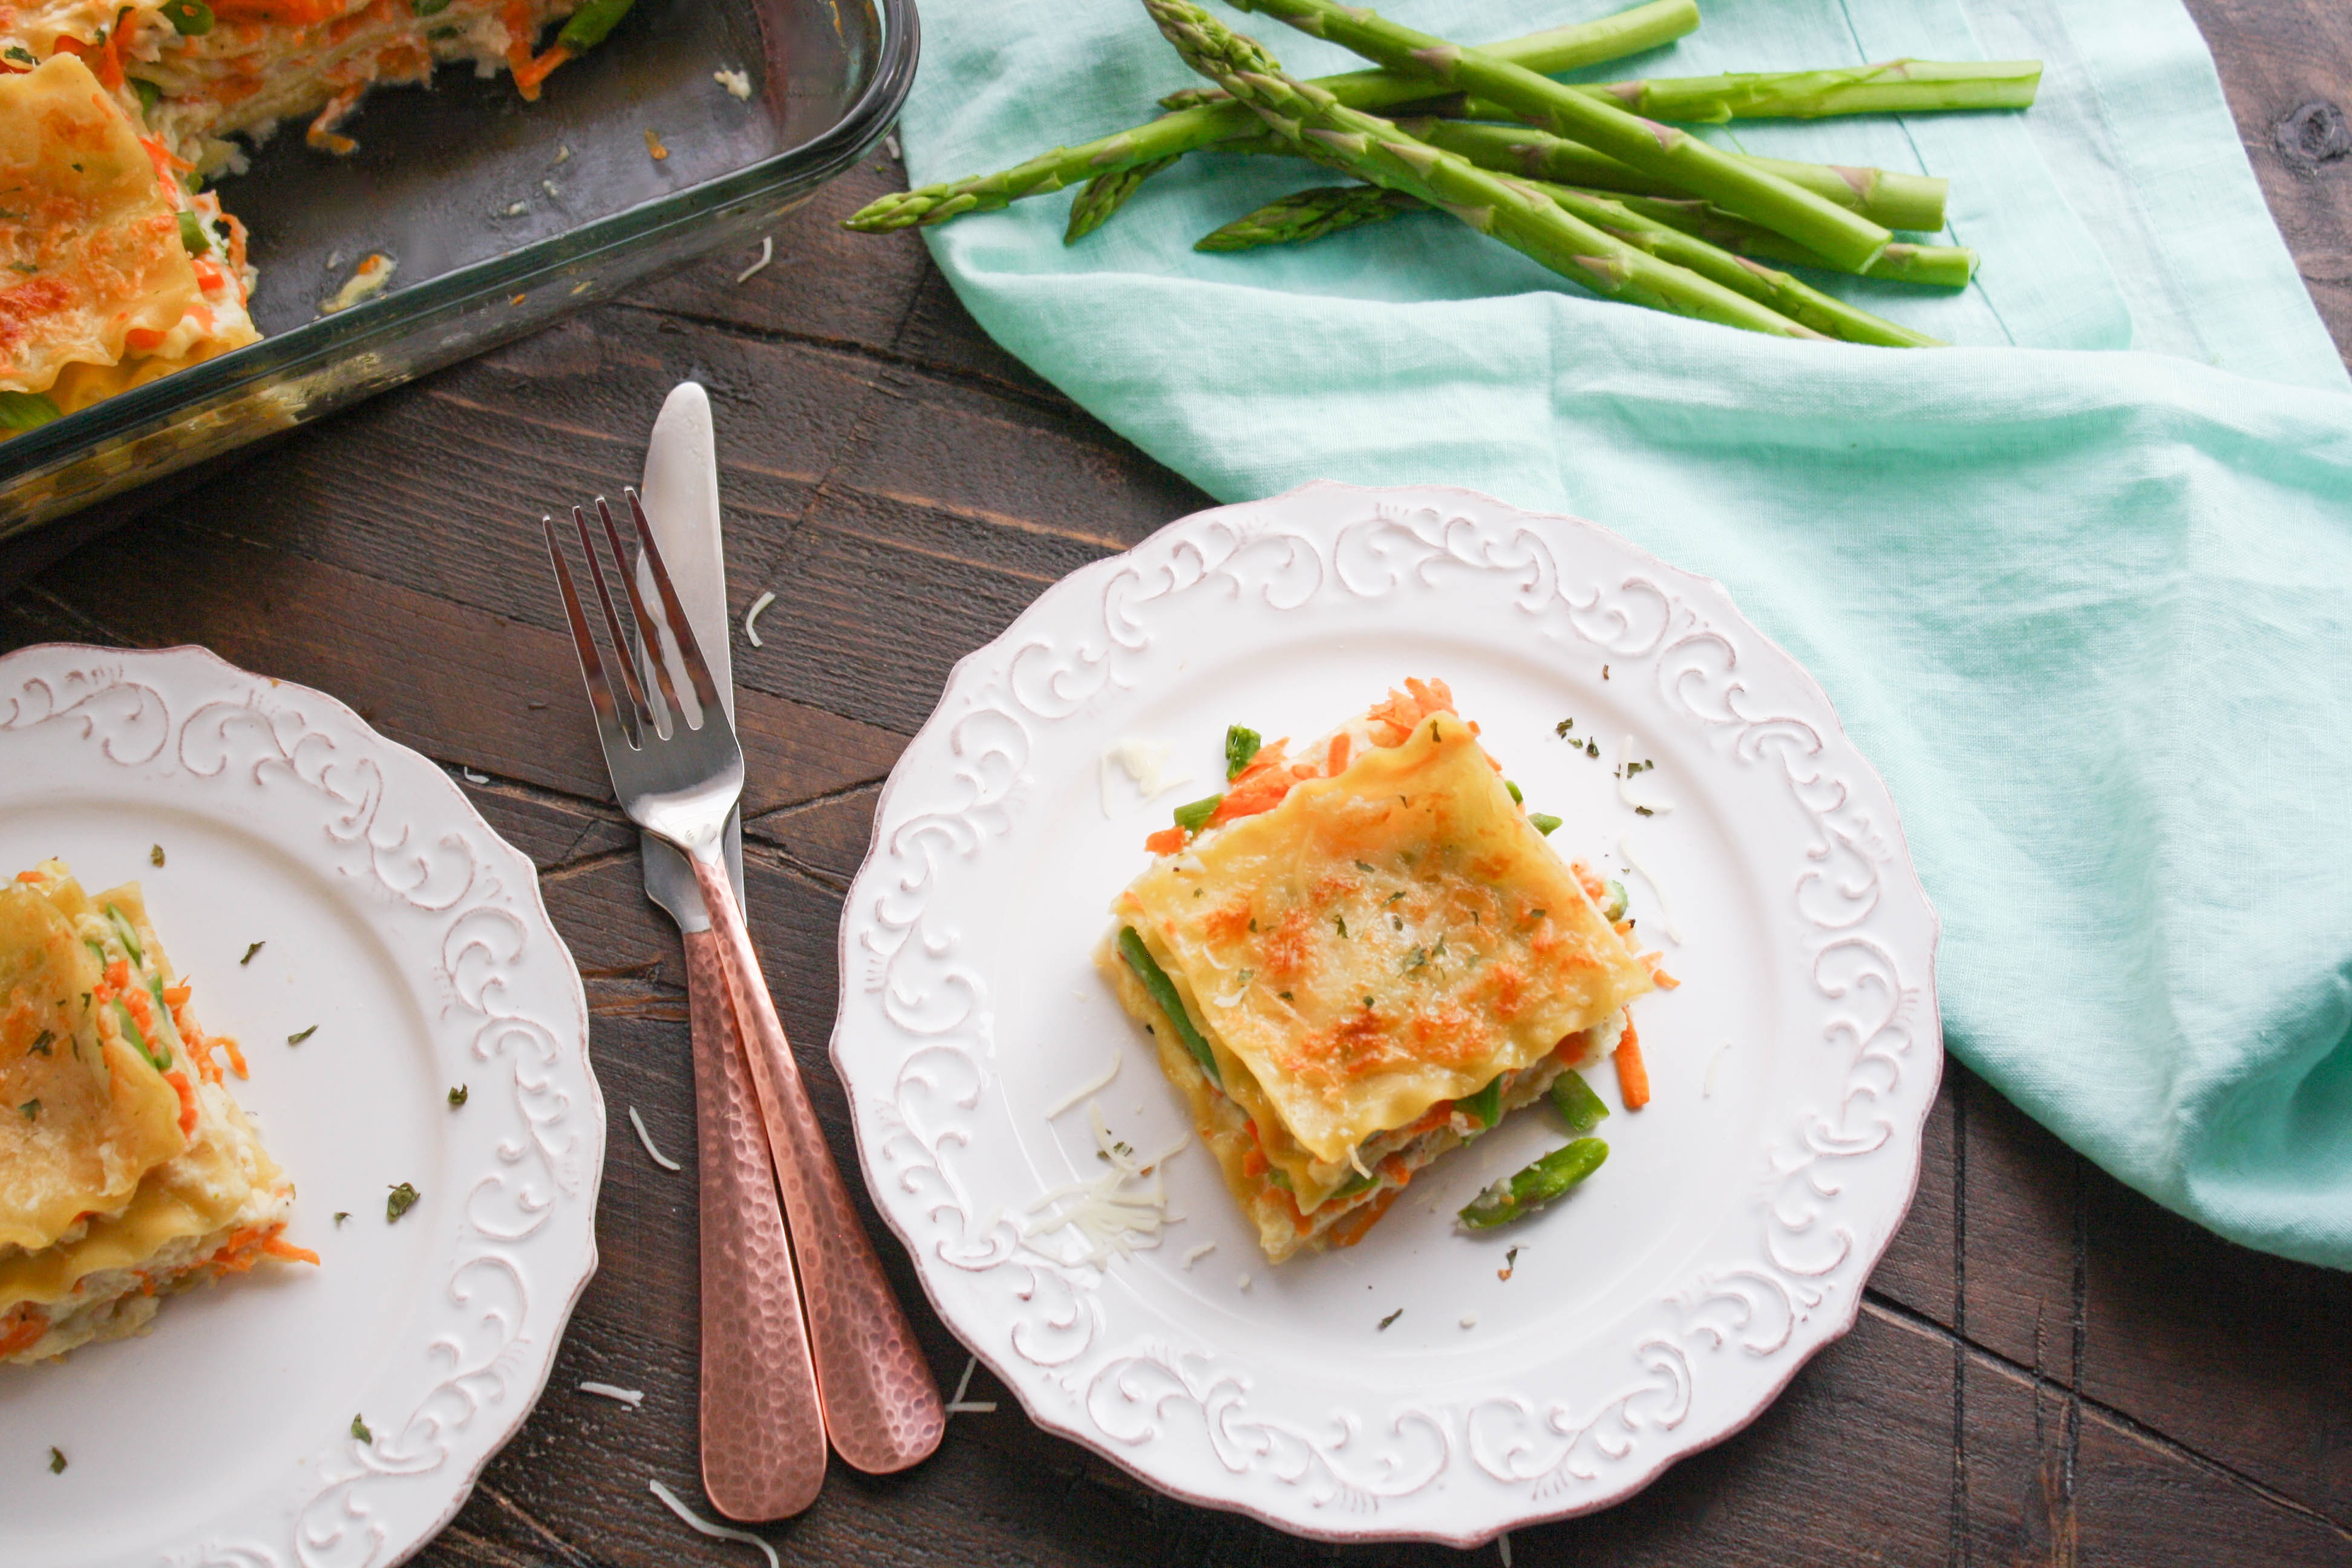 Asparagus and Sweet Potato Lasagna makes a tasty meal for the springtime. Asparagus and Sweet Potato Lasagna is creamy and rich, and delicious!